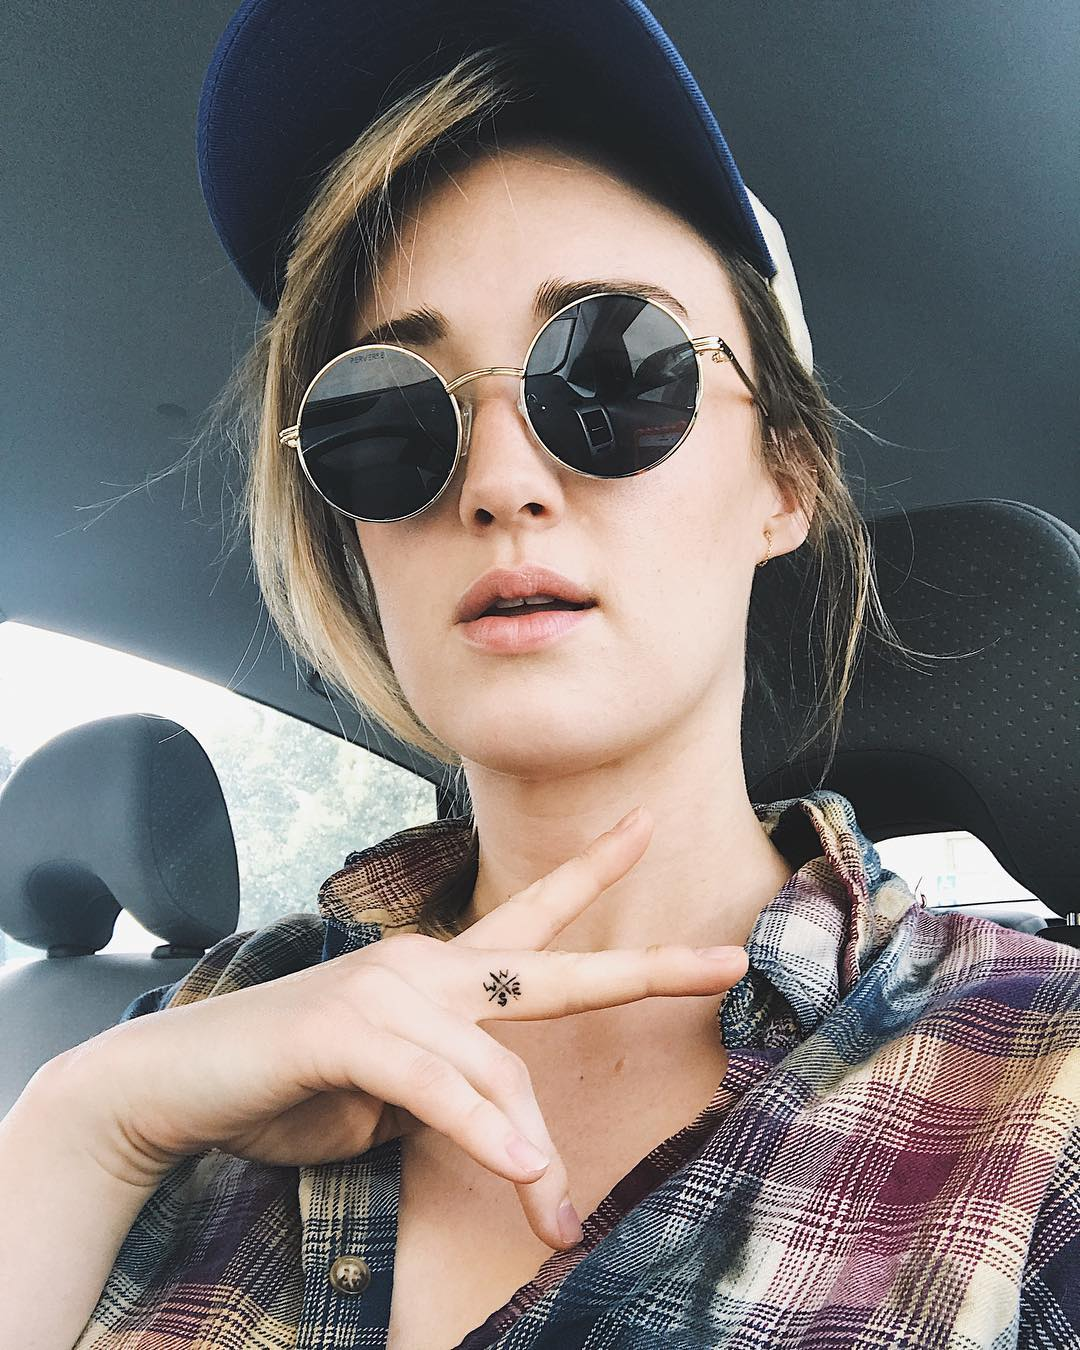 Ashley johnson Instagram username